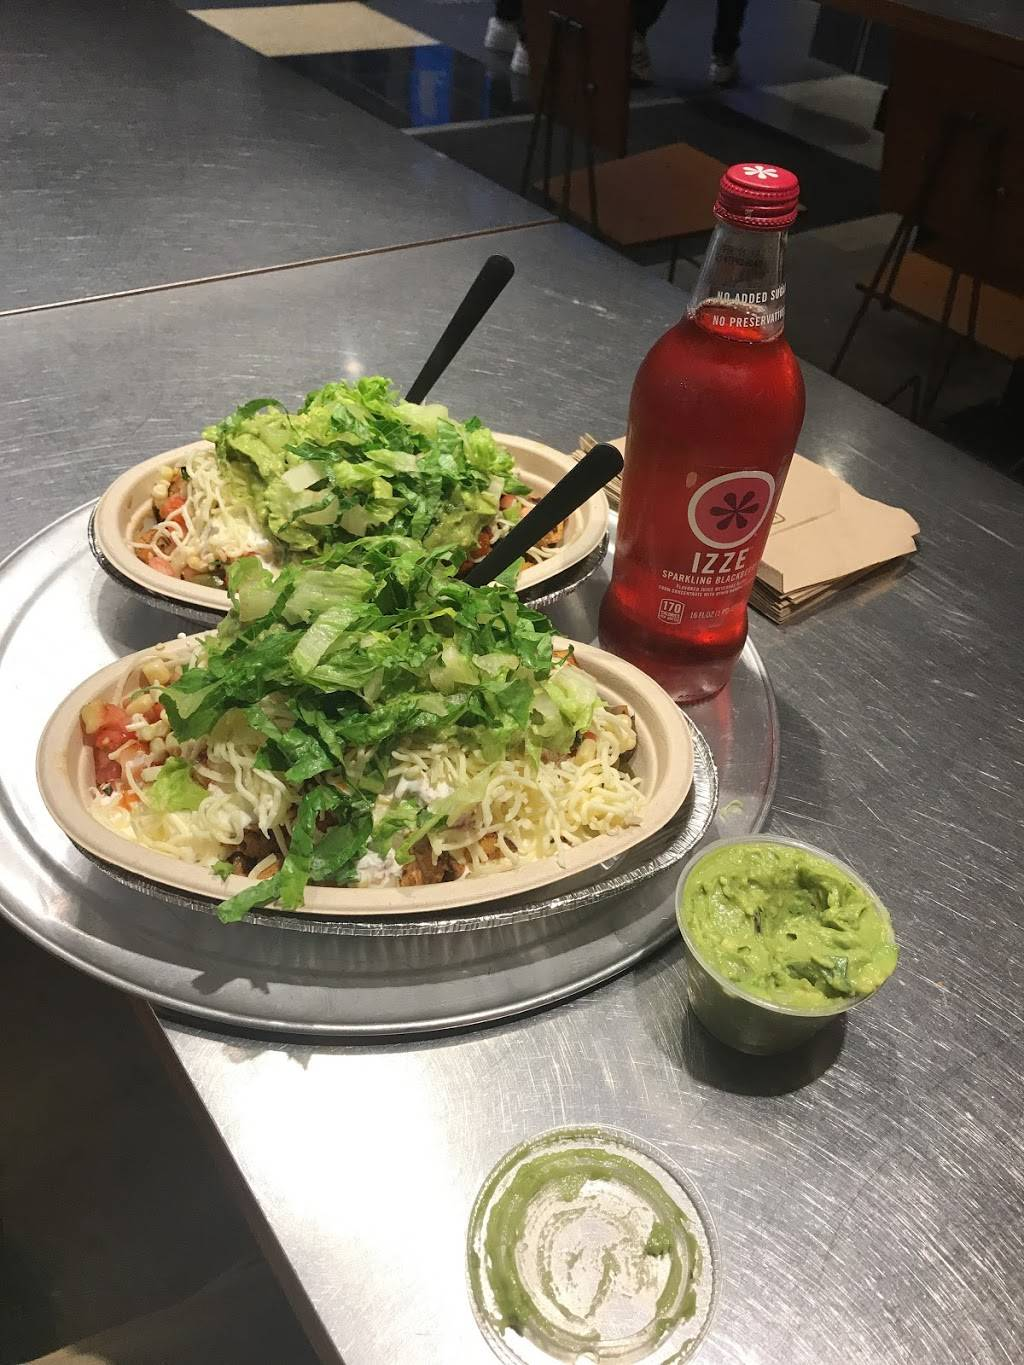 Chipotle Mexican Grill   restaurant   9015 Queens Blvd Ste FC12, Elmhurst, NY 11373, USA   3473963452 OR +1 347-396-3452